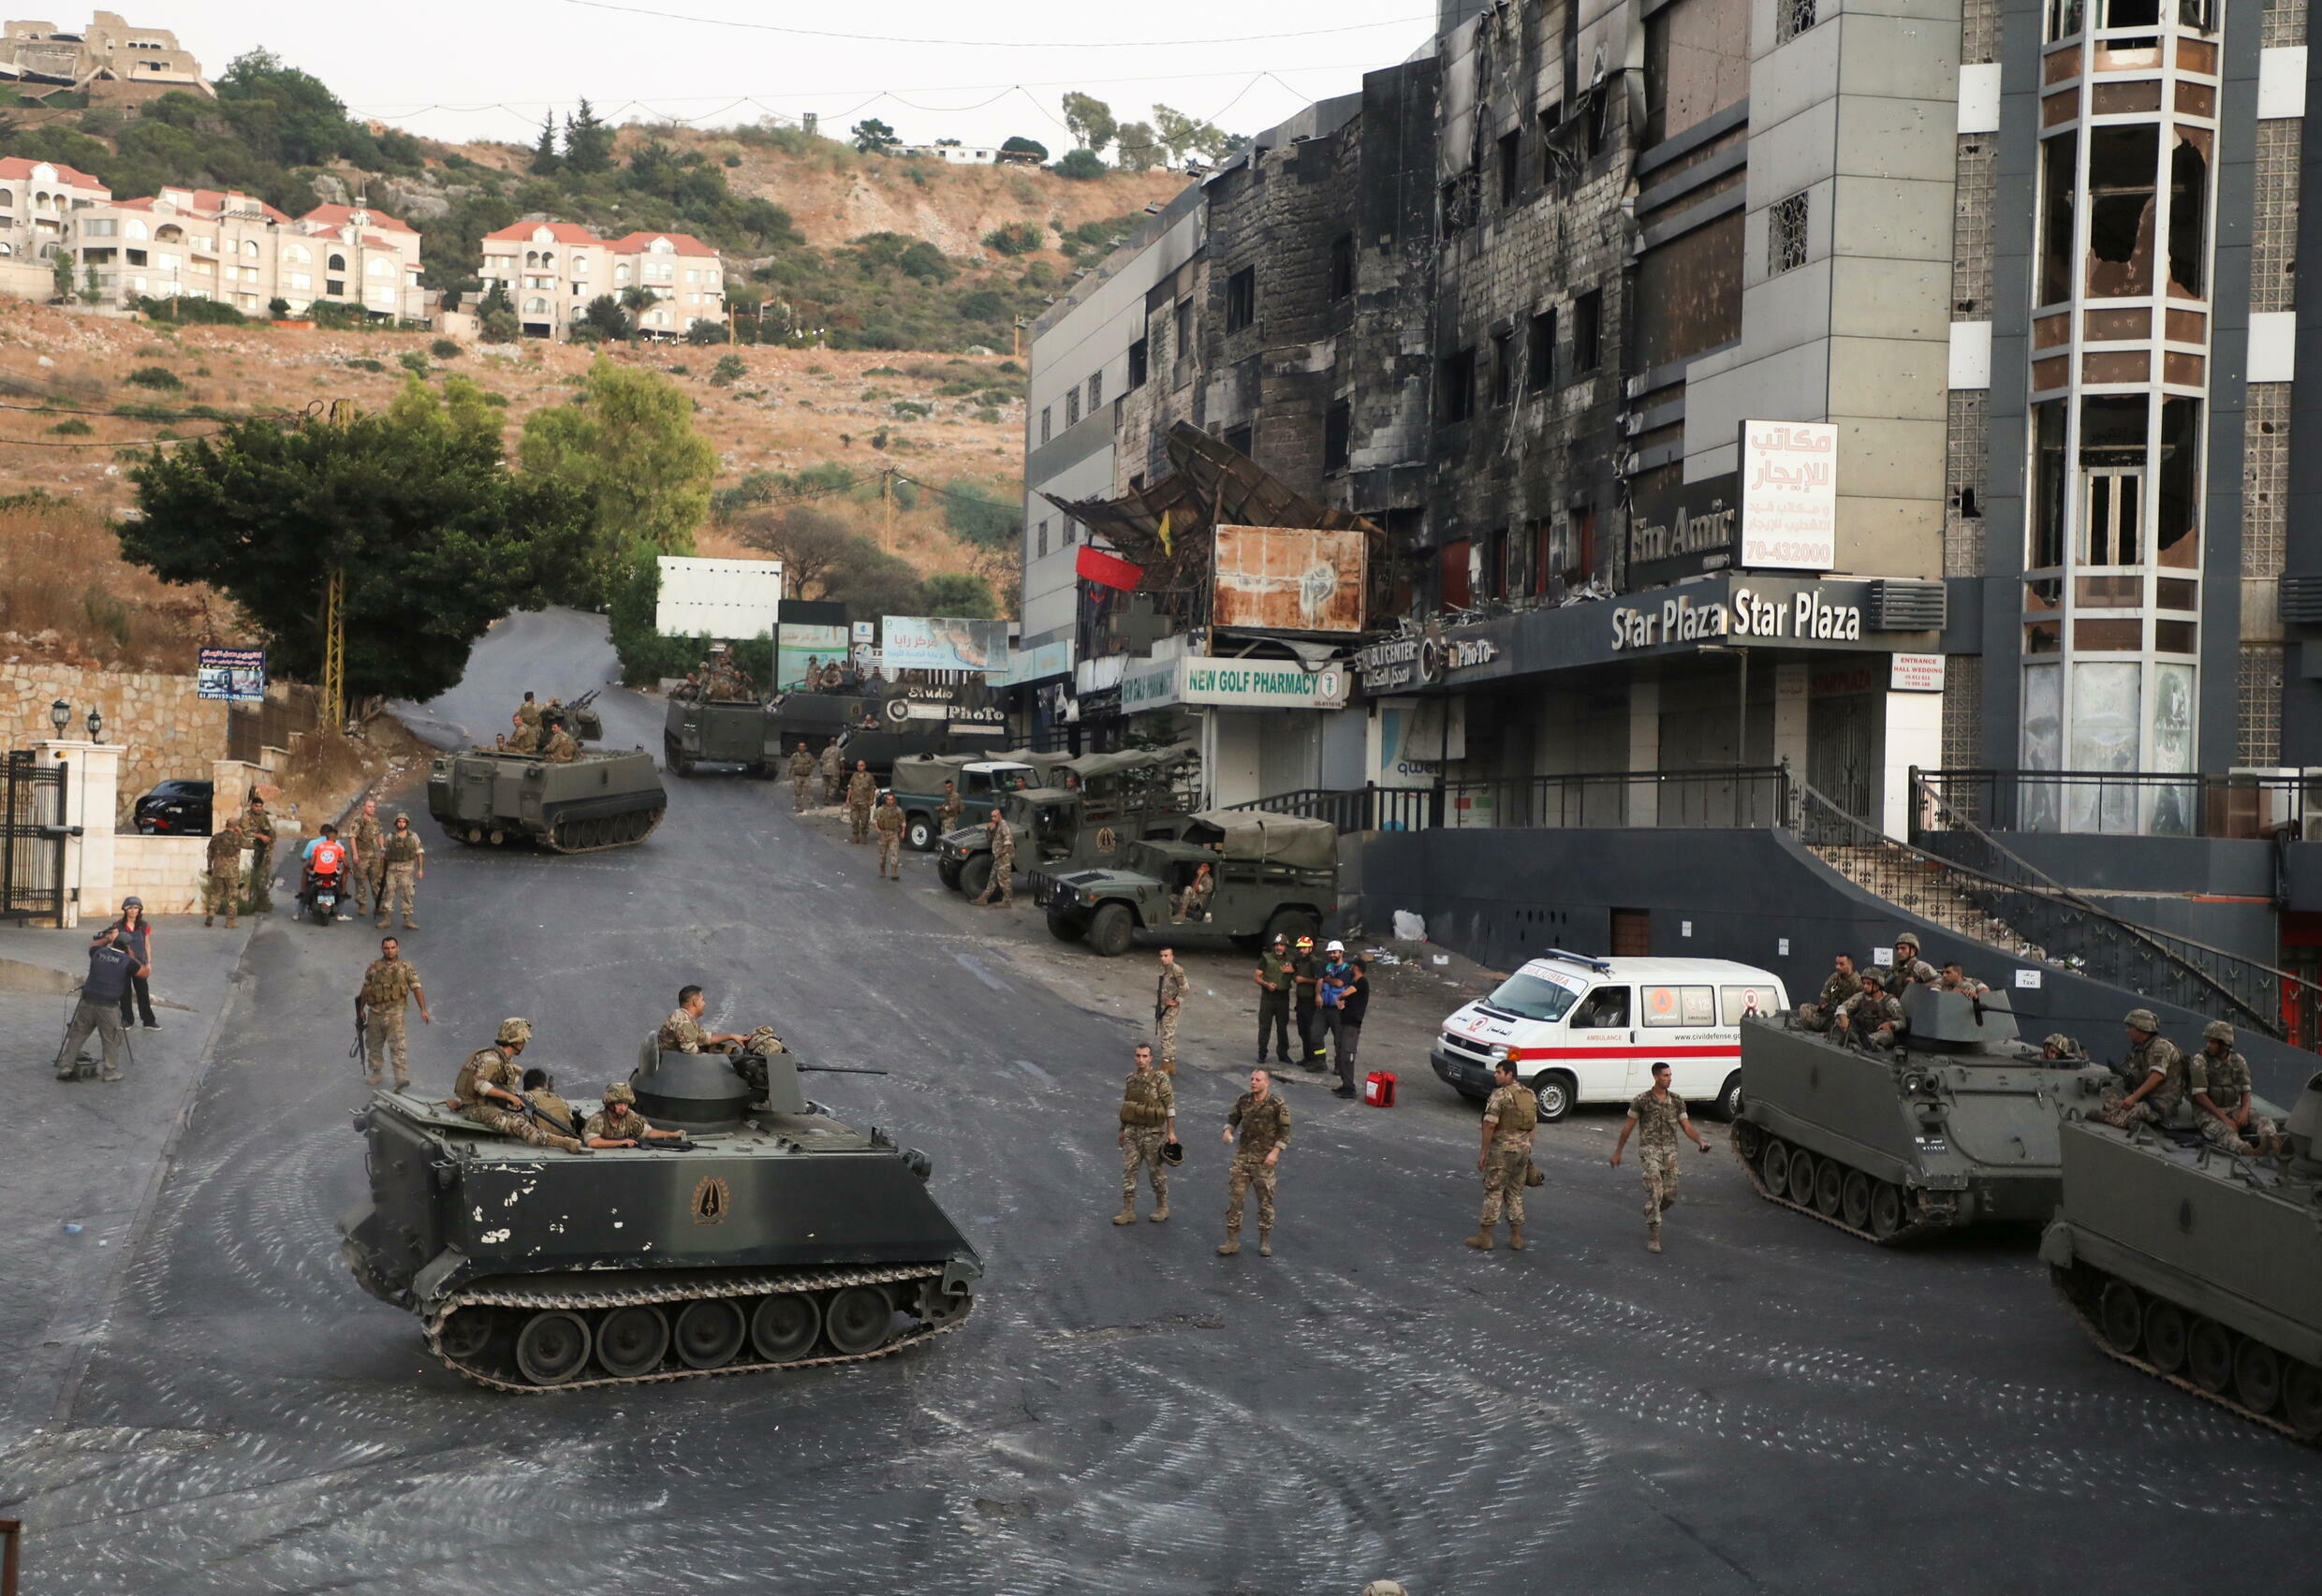 2021-08-01T172851Z_892526048_RC2HWO9WP86D_RTRMADP_3_LEBANON-SECURITY-CLASHES (1)